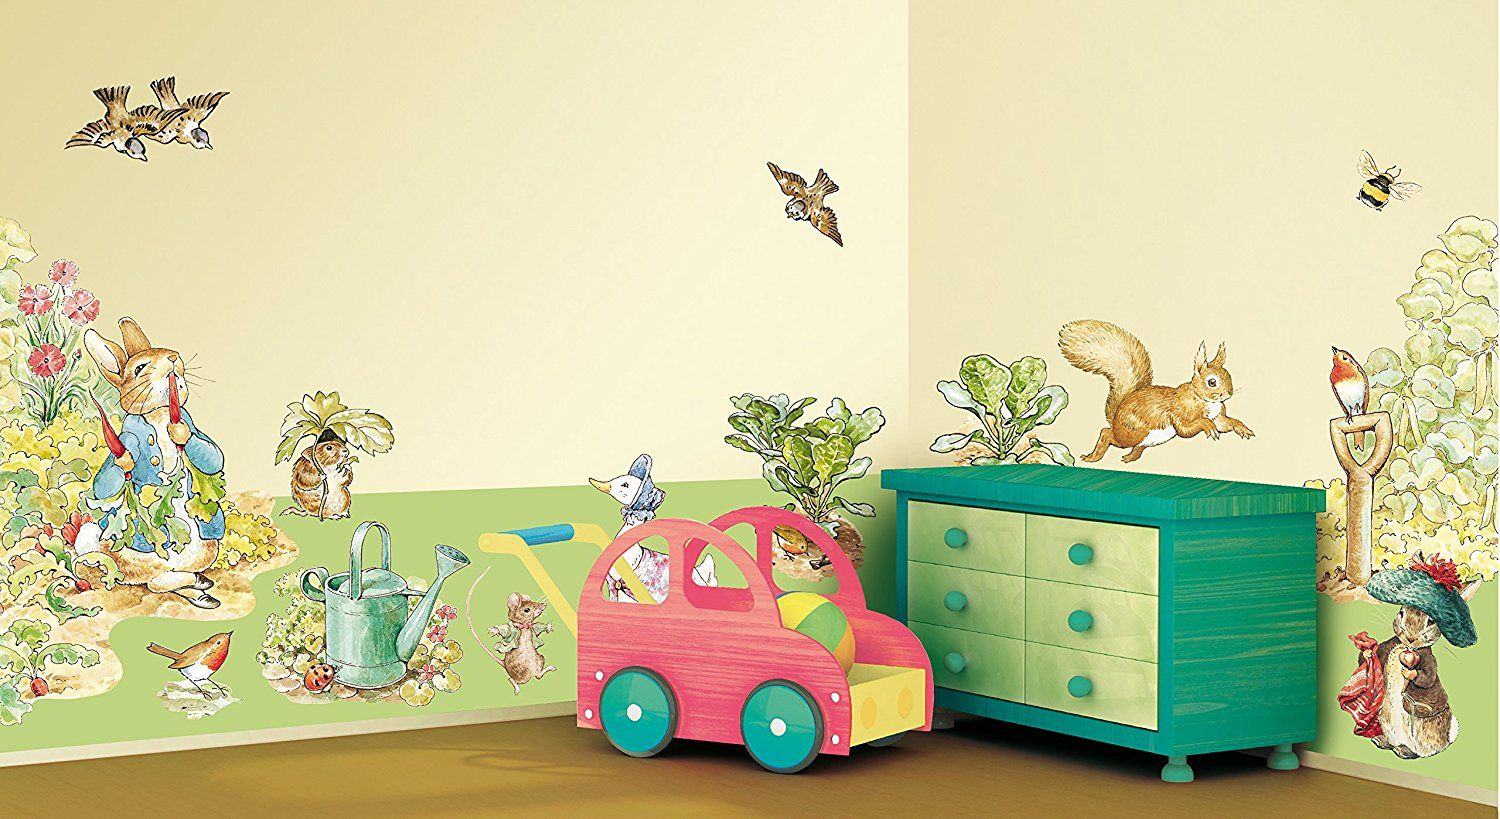 Art Appliques Beatrix Potter Wall Decals Amazon.co.uk Kitchen u0026 Home  sc 1 st  Pinterest : sticker wall art uk - www.pureclipart.com